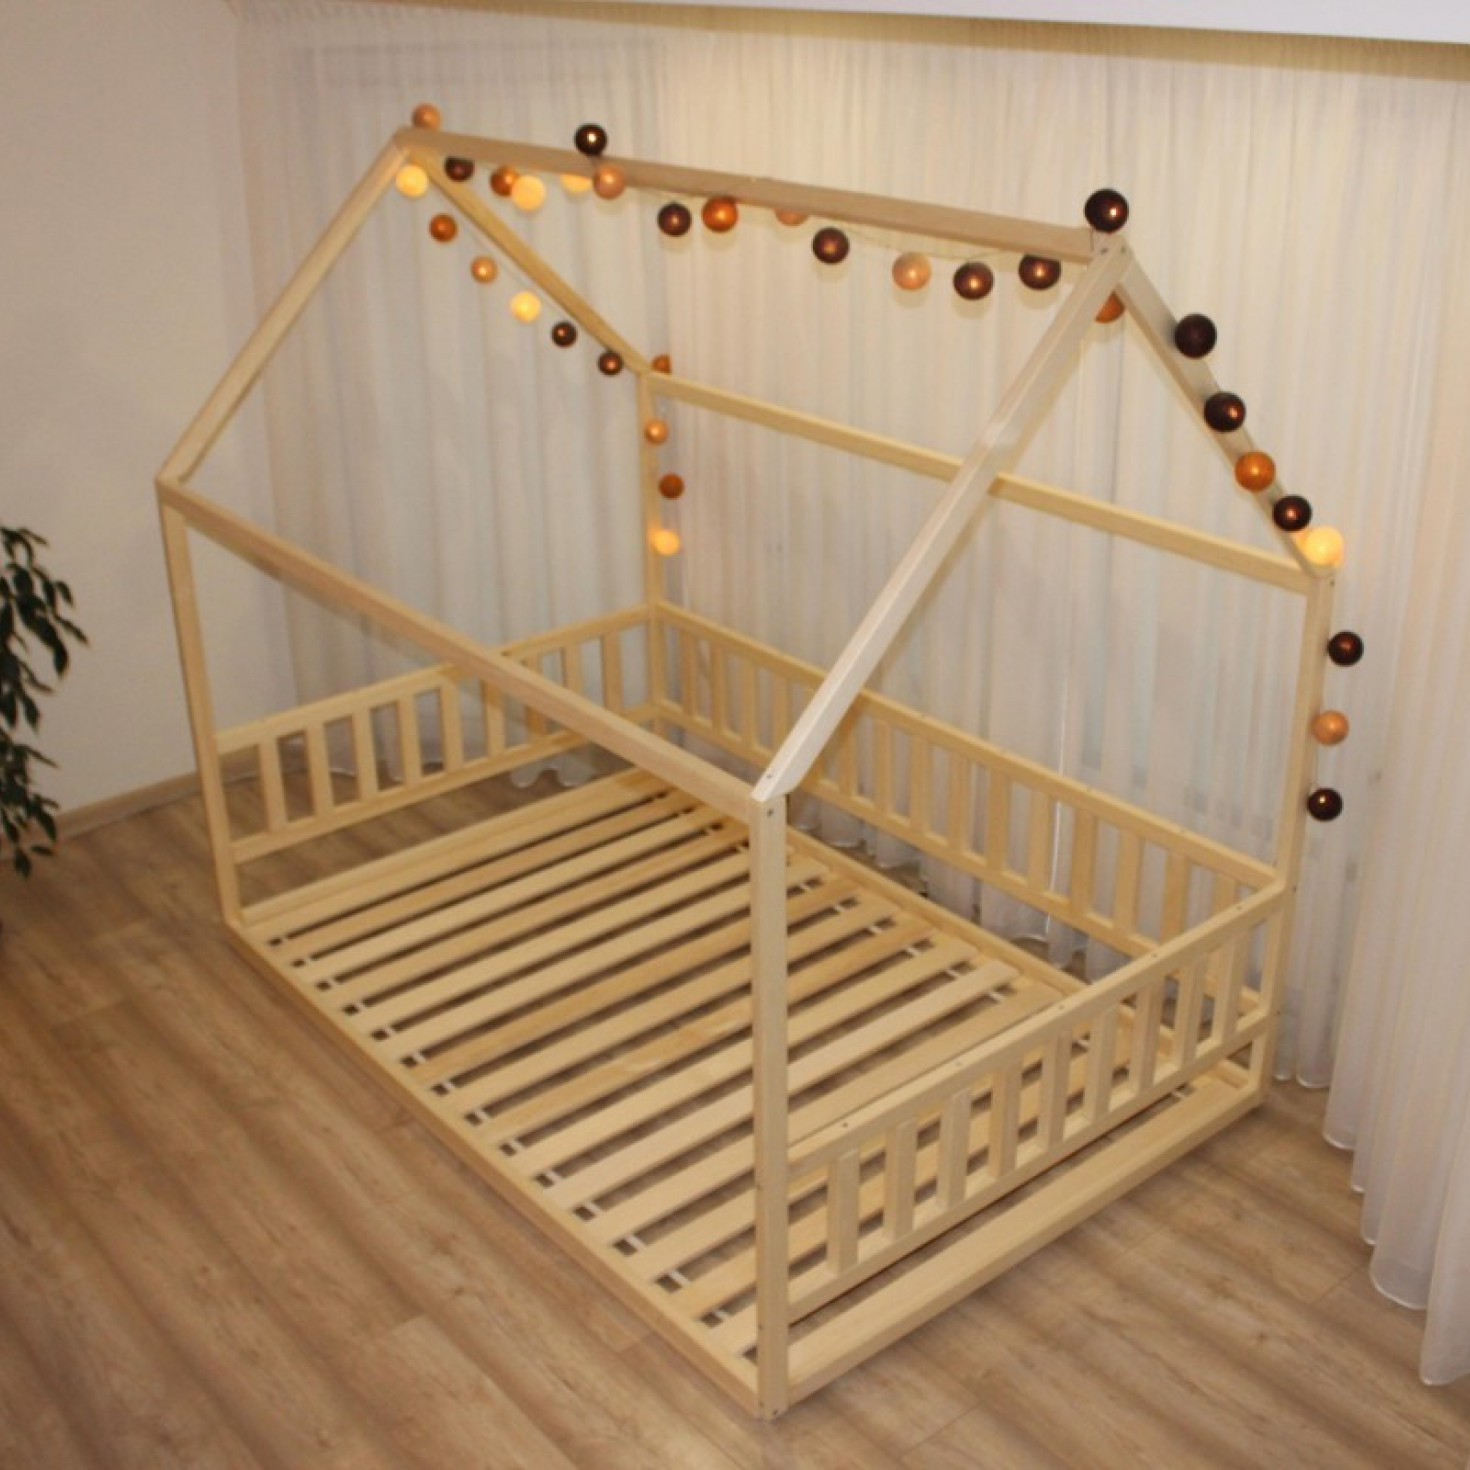 A toddler floor bed frame decorated with a lighting chain